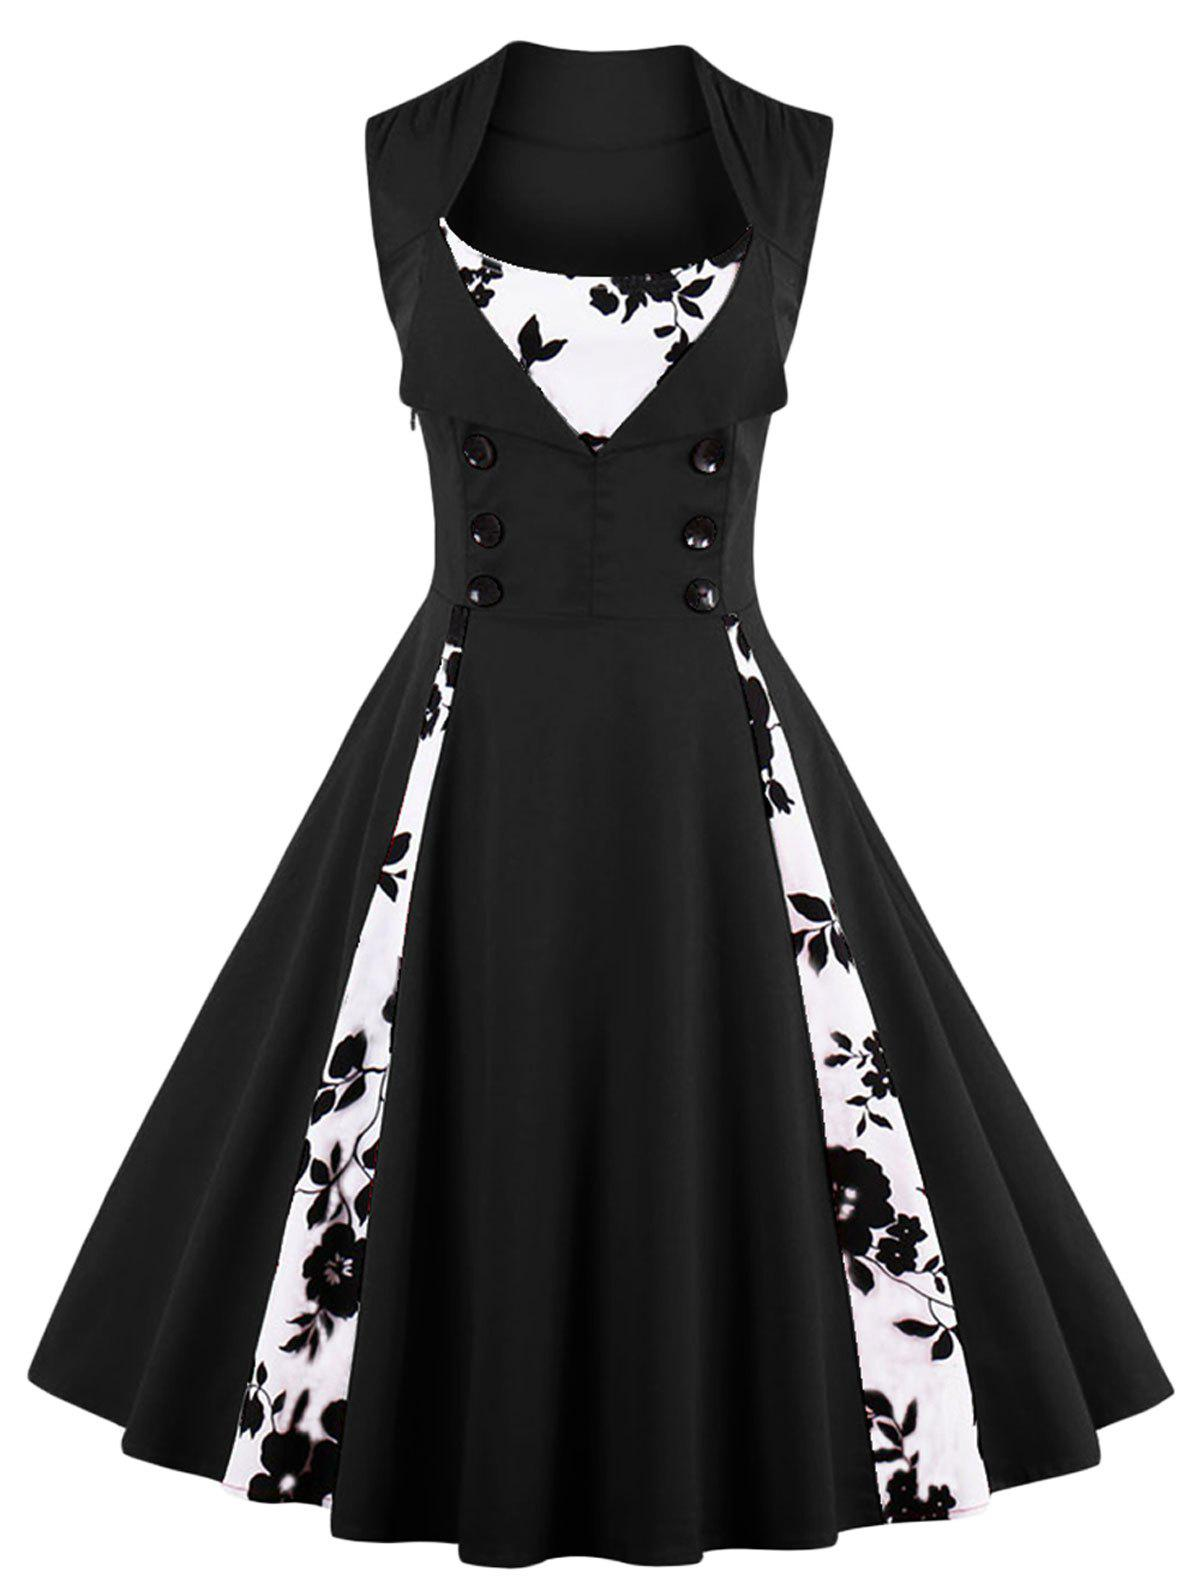 Vintage Floral Prom Swing DressWOMEN<br><br>Size: 2XL; Color: BLACK; Style: Vintage; Material: Cotton,Polyester; Silhouette: A-Line; Dresses Length: Knee-Length; Neckline: Scoop Neck; Sleeve Length: Sleeveless; Pattern Type: Floral; With Belt: No; Season: Fall,Spring,Summer; Weight: 0.4000kg; Package Contents: 1 x Dress;